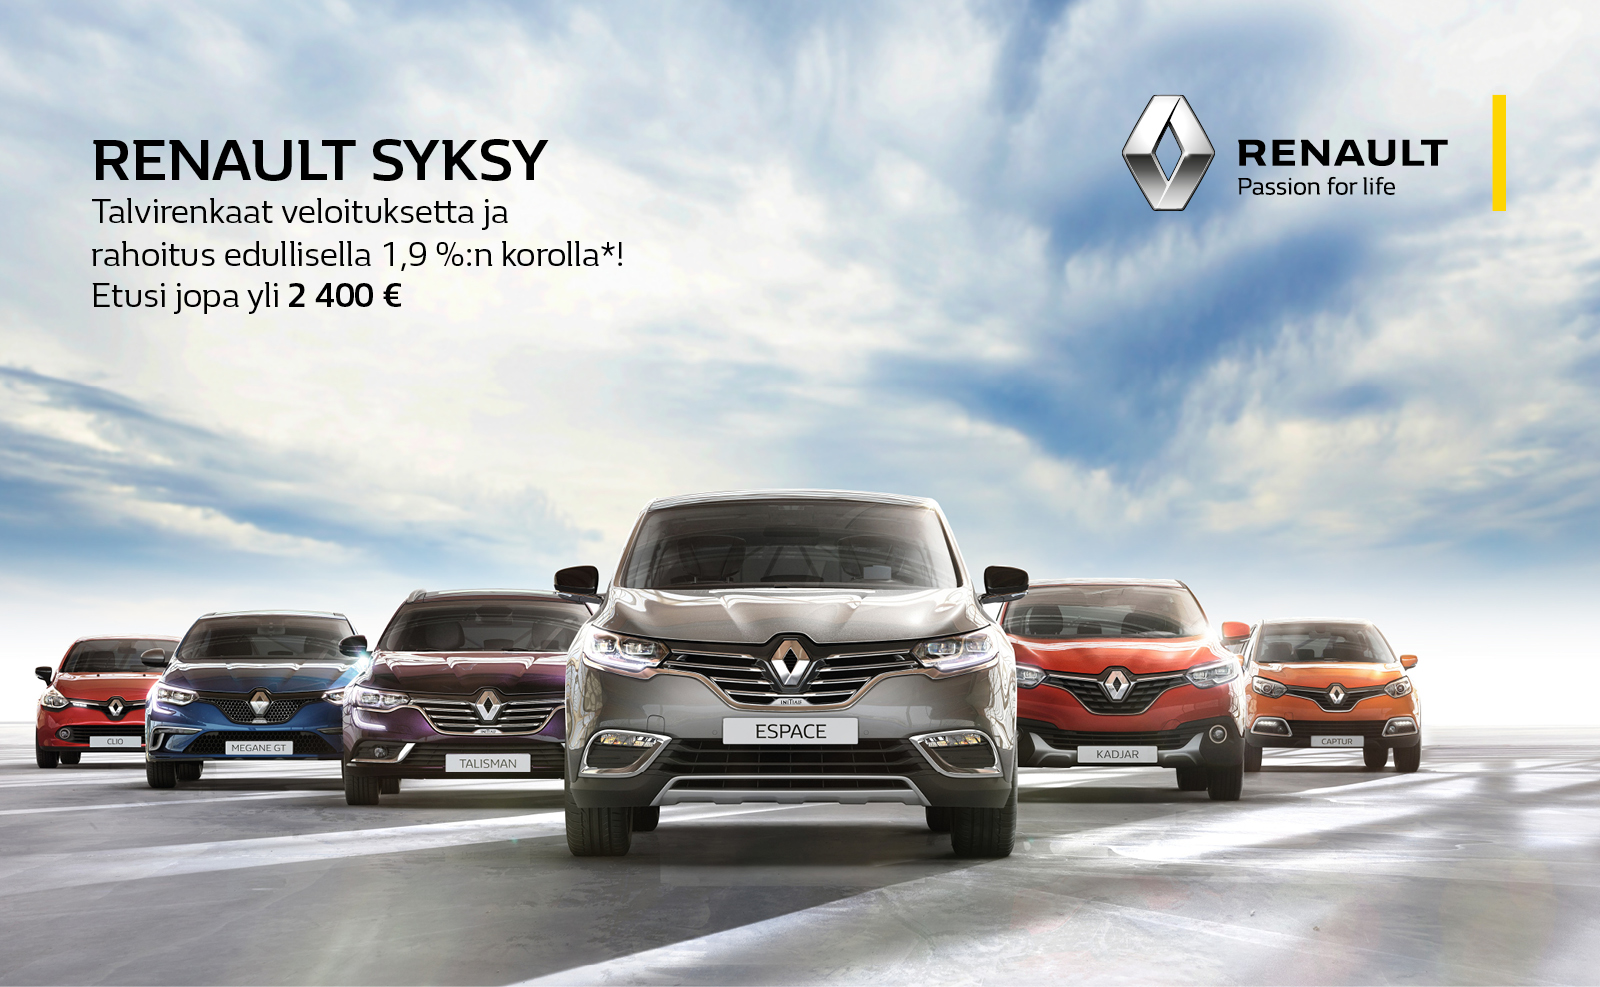 Renault syksy 2016